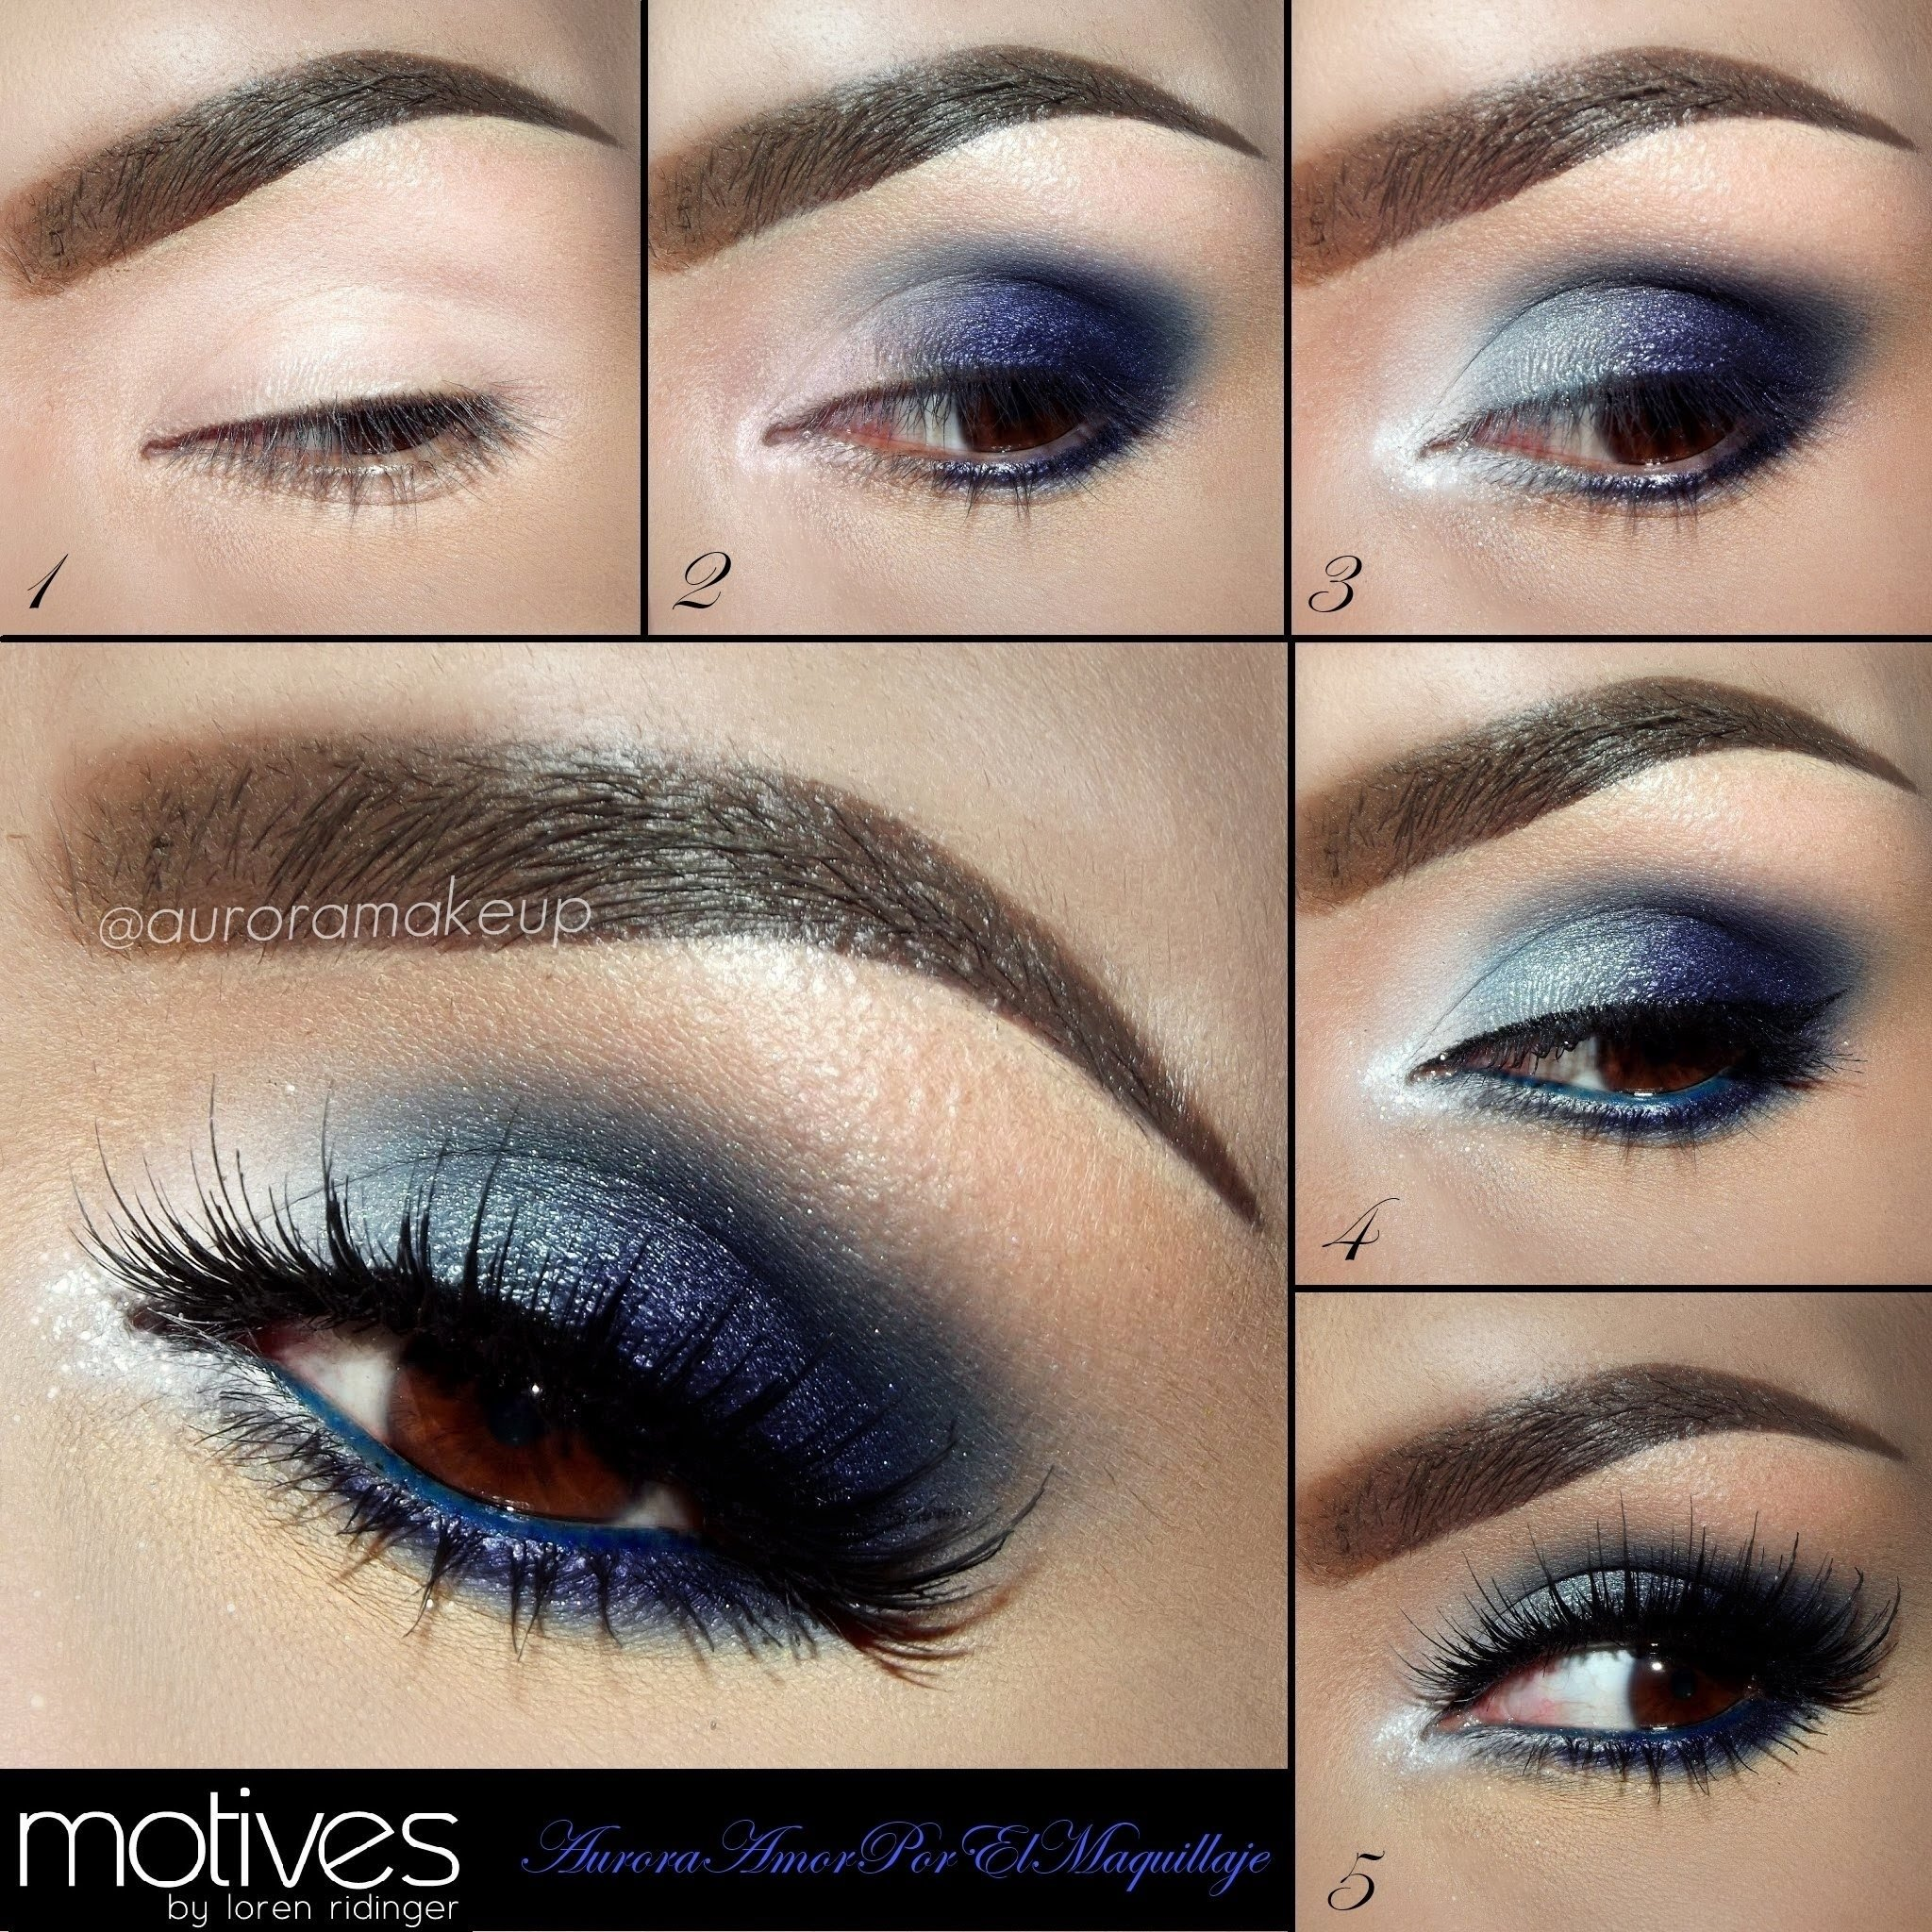 10 Unique Eye Makeup Ideas For Brown Eyes eye makeup ideas brown eyes 2017 ideas pictures tips about make up 1 2020